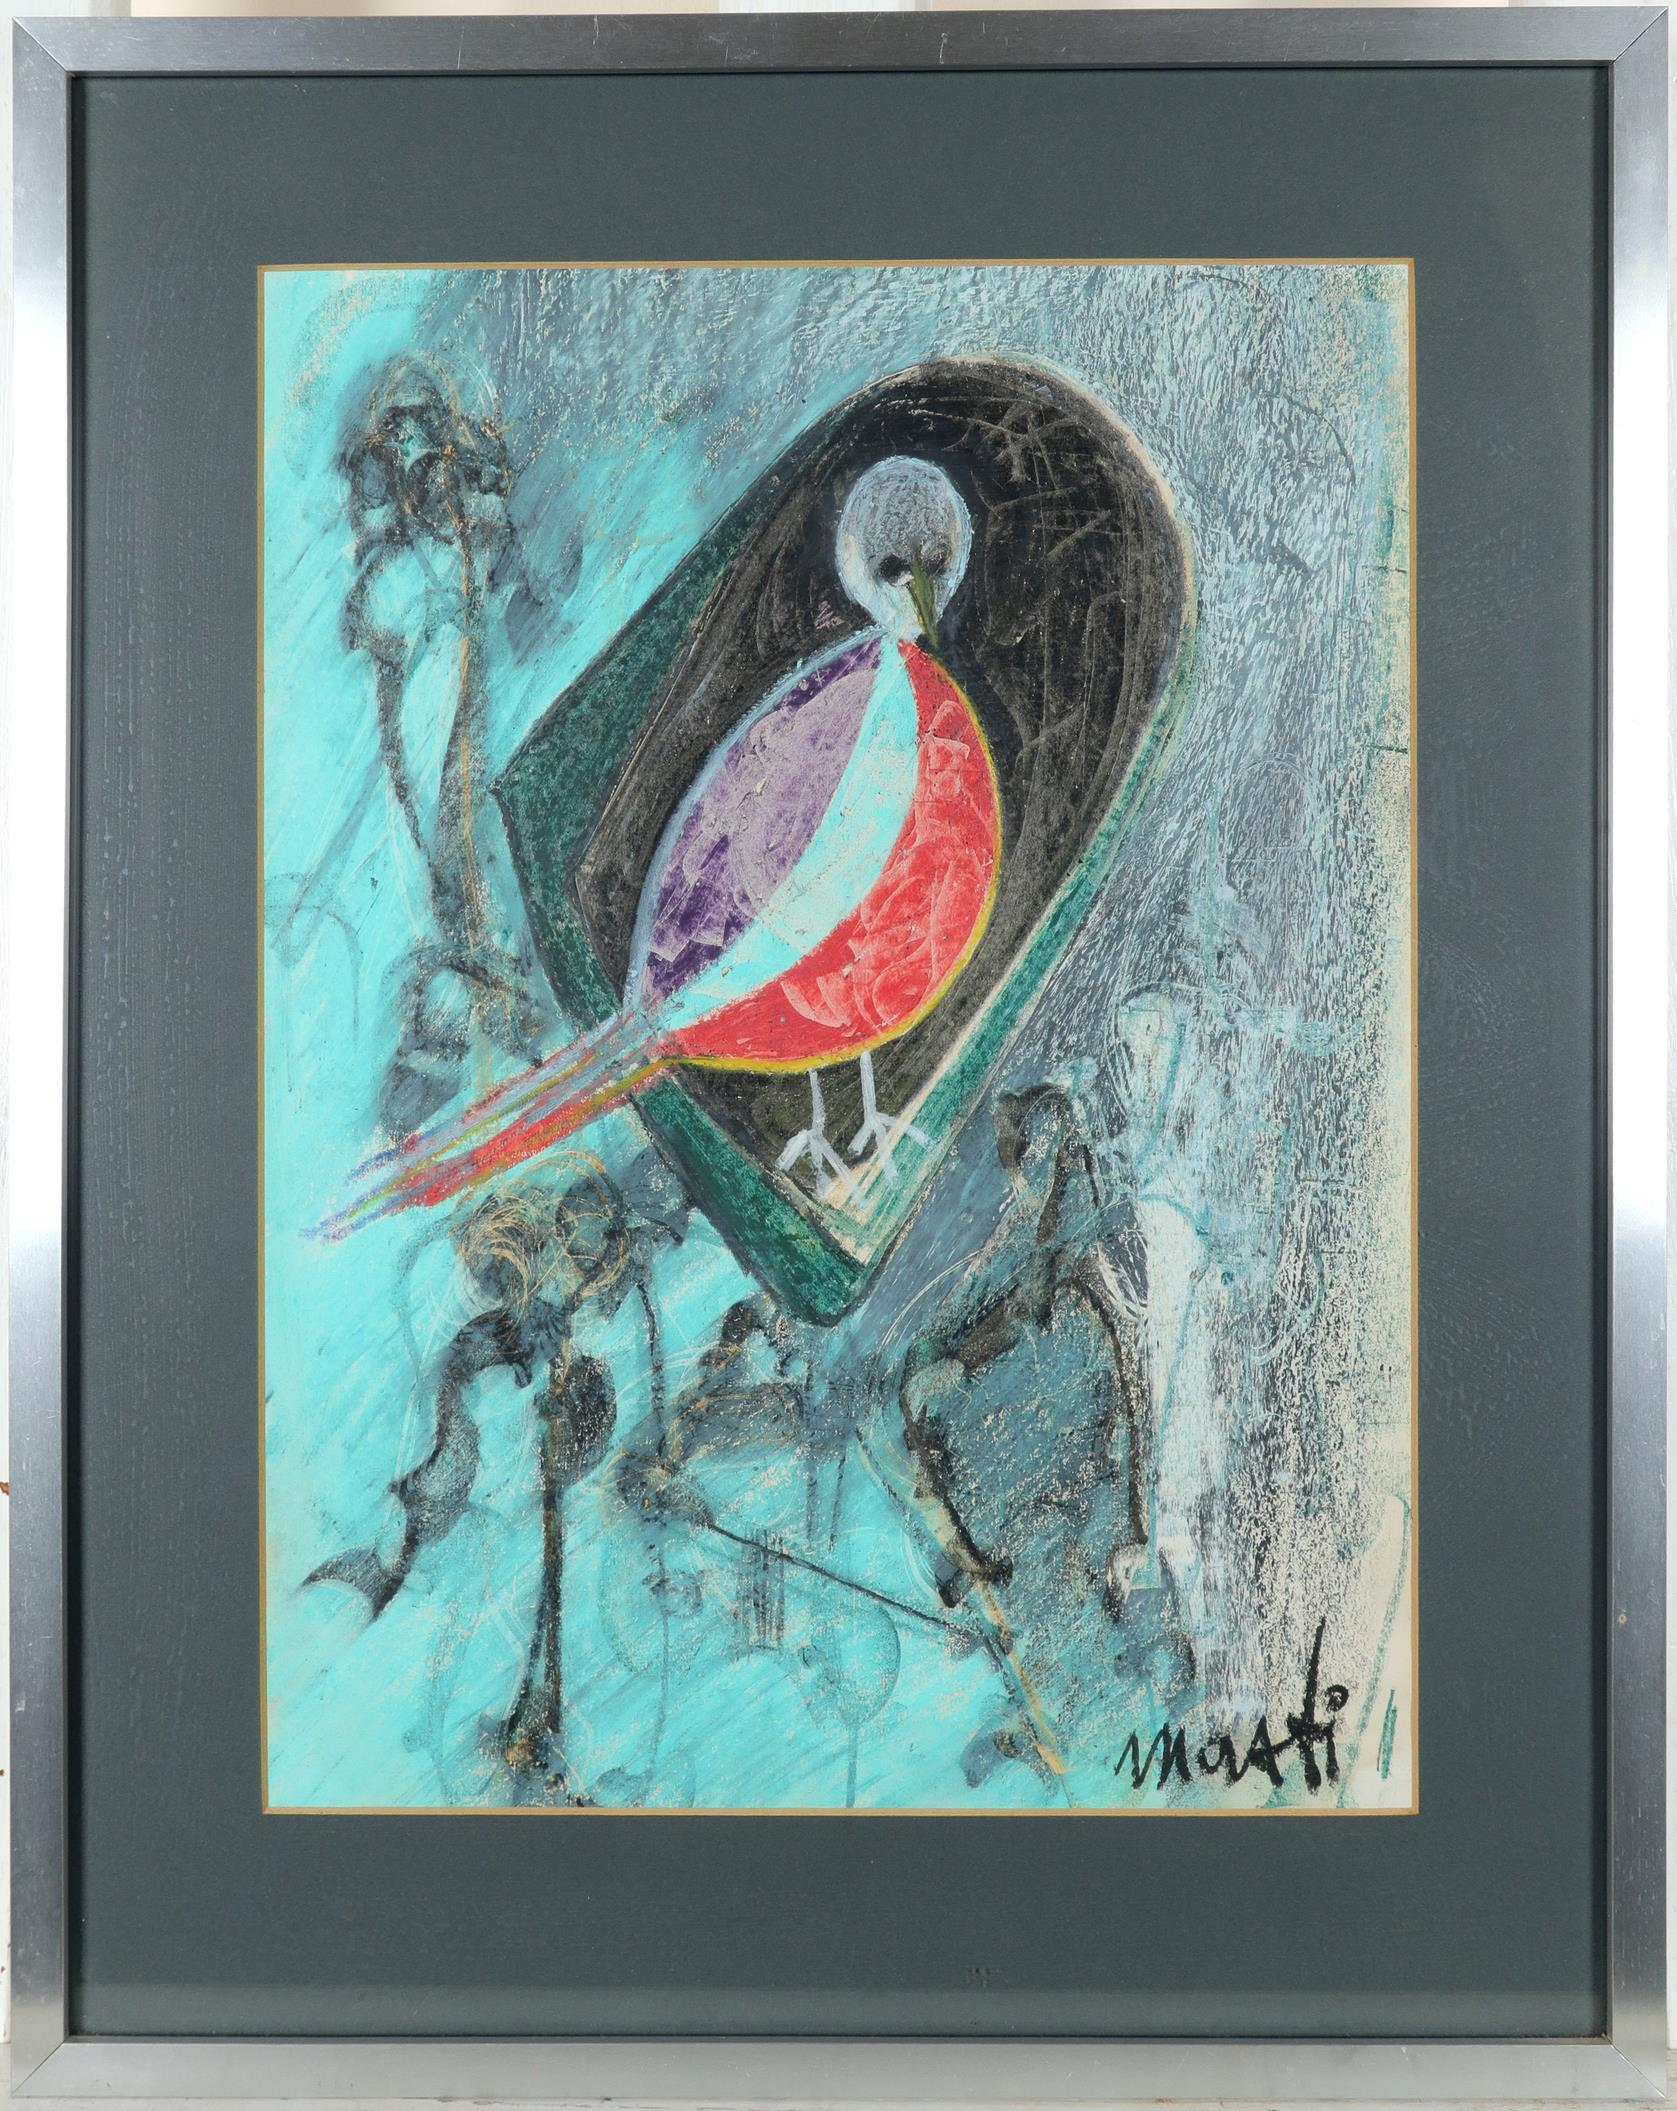 20th Century School Bird on a branch Signed M(?)oati (lower right) Pastel 41.7 x 31cm Together - Image 3 of 6